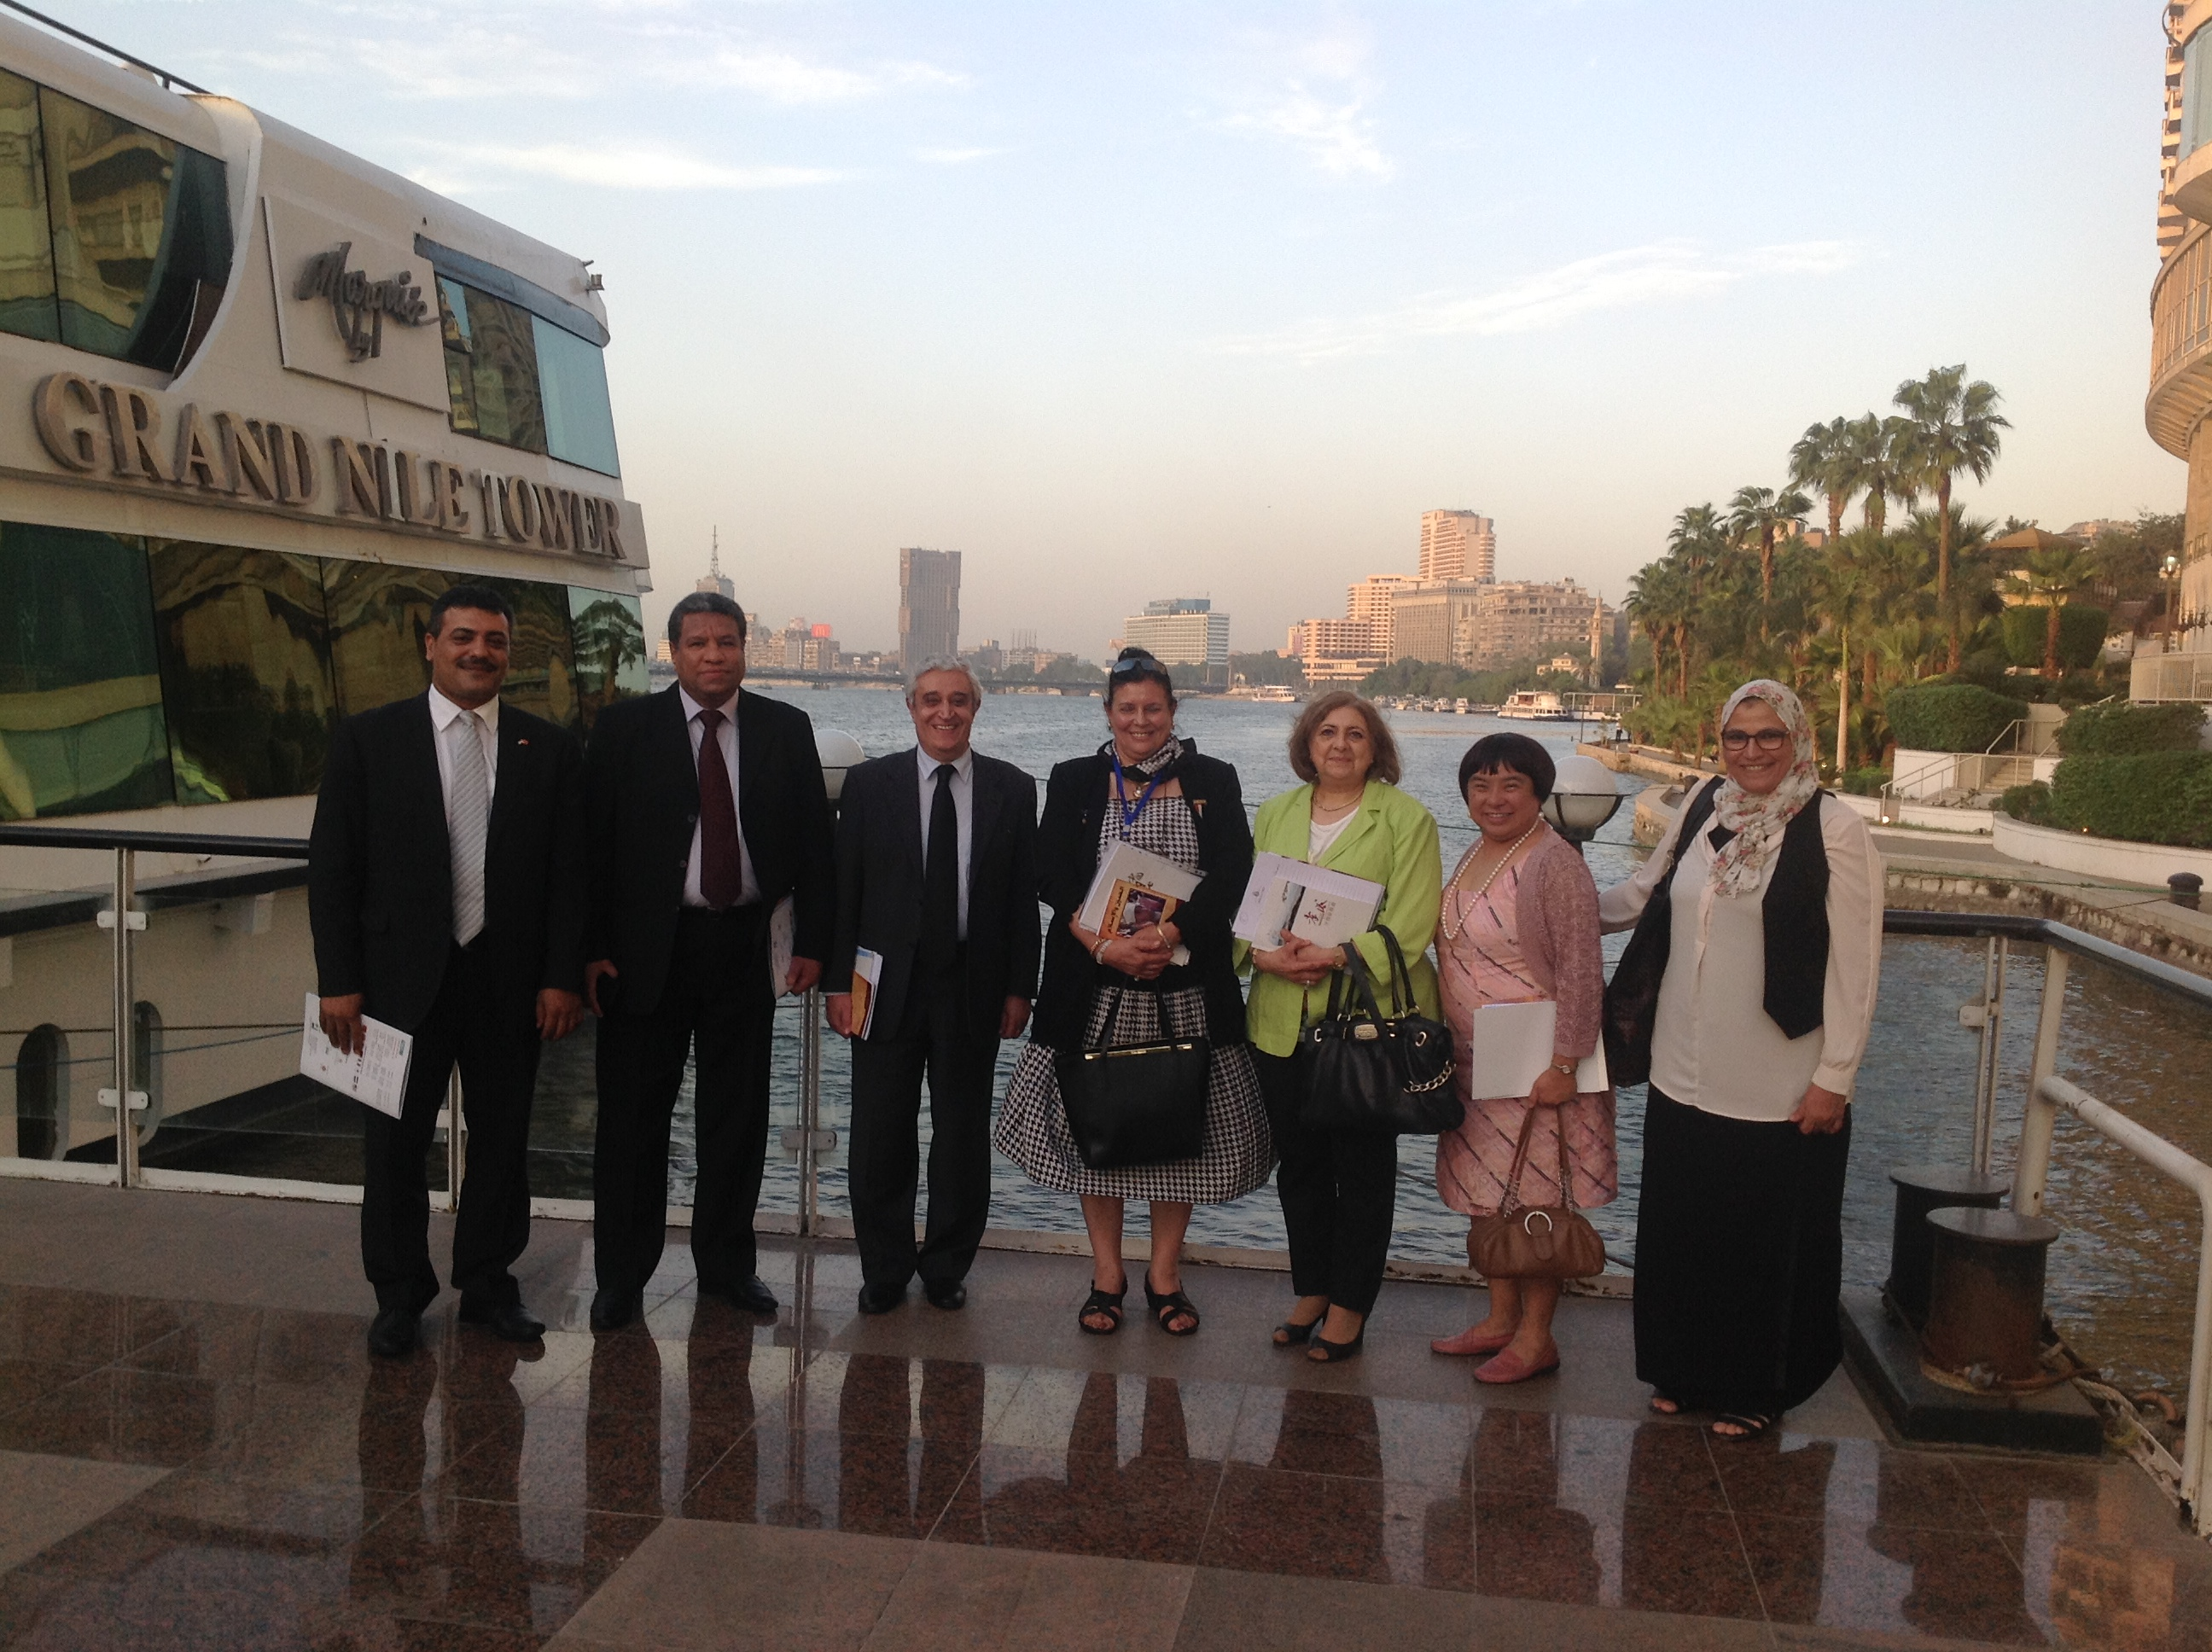 The cooperation and exchange between Egypt and Hubei province